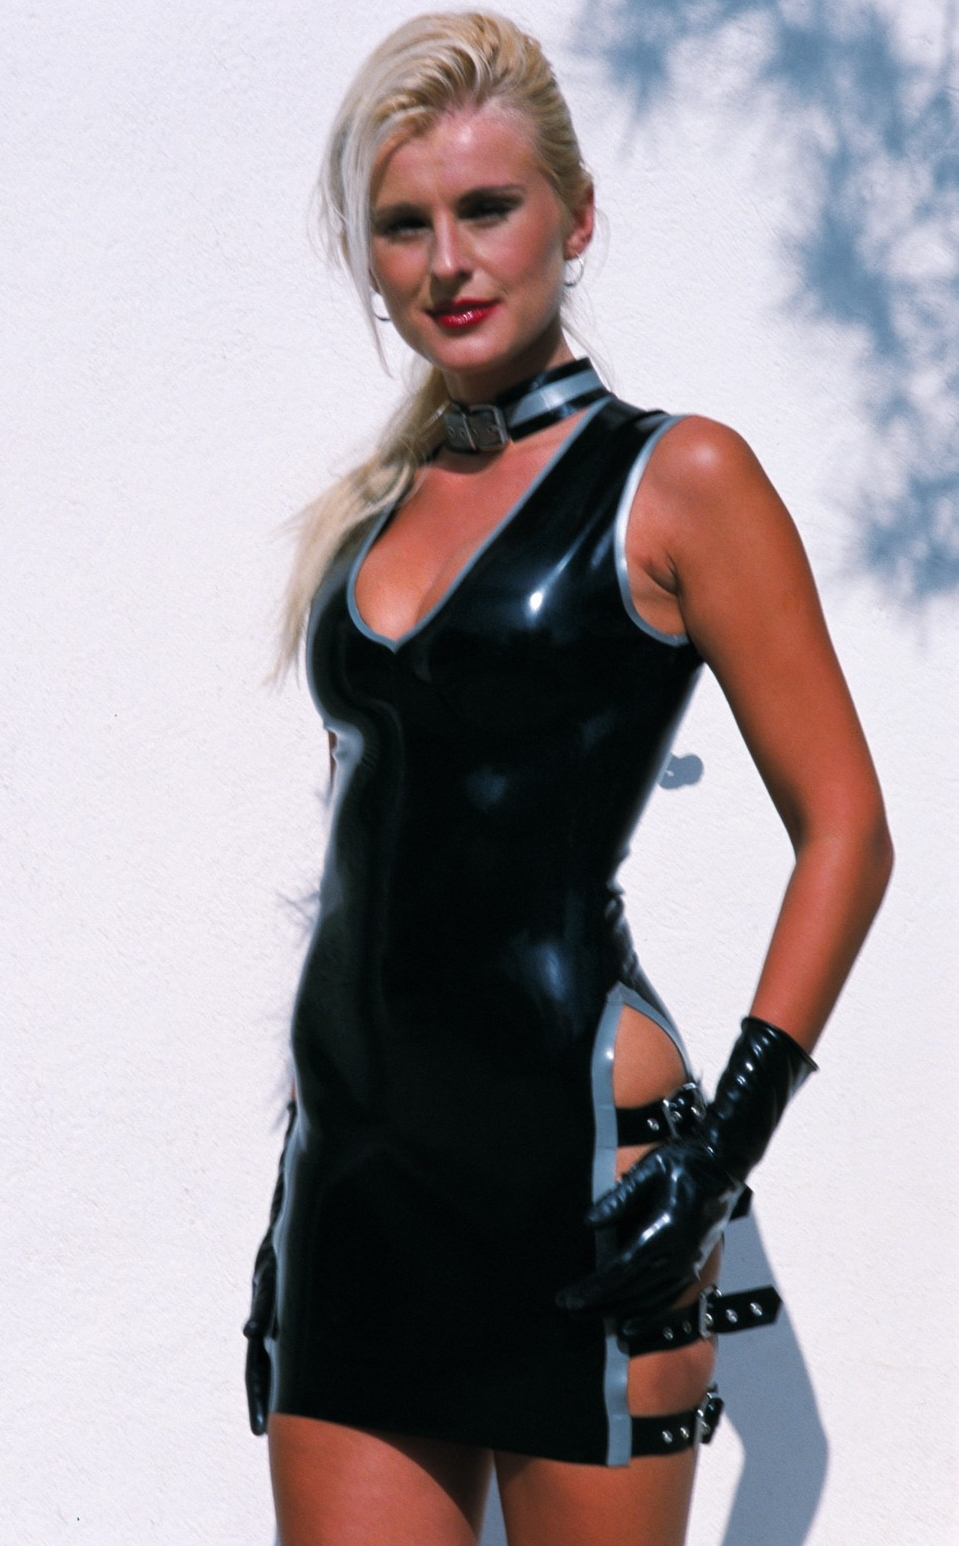 Are not sandra russo latex